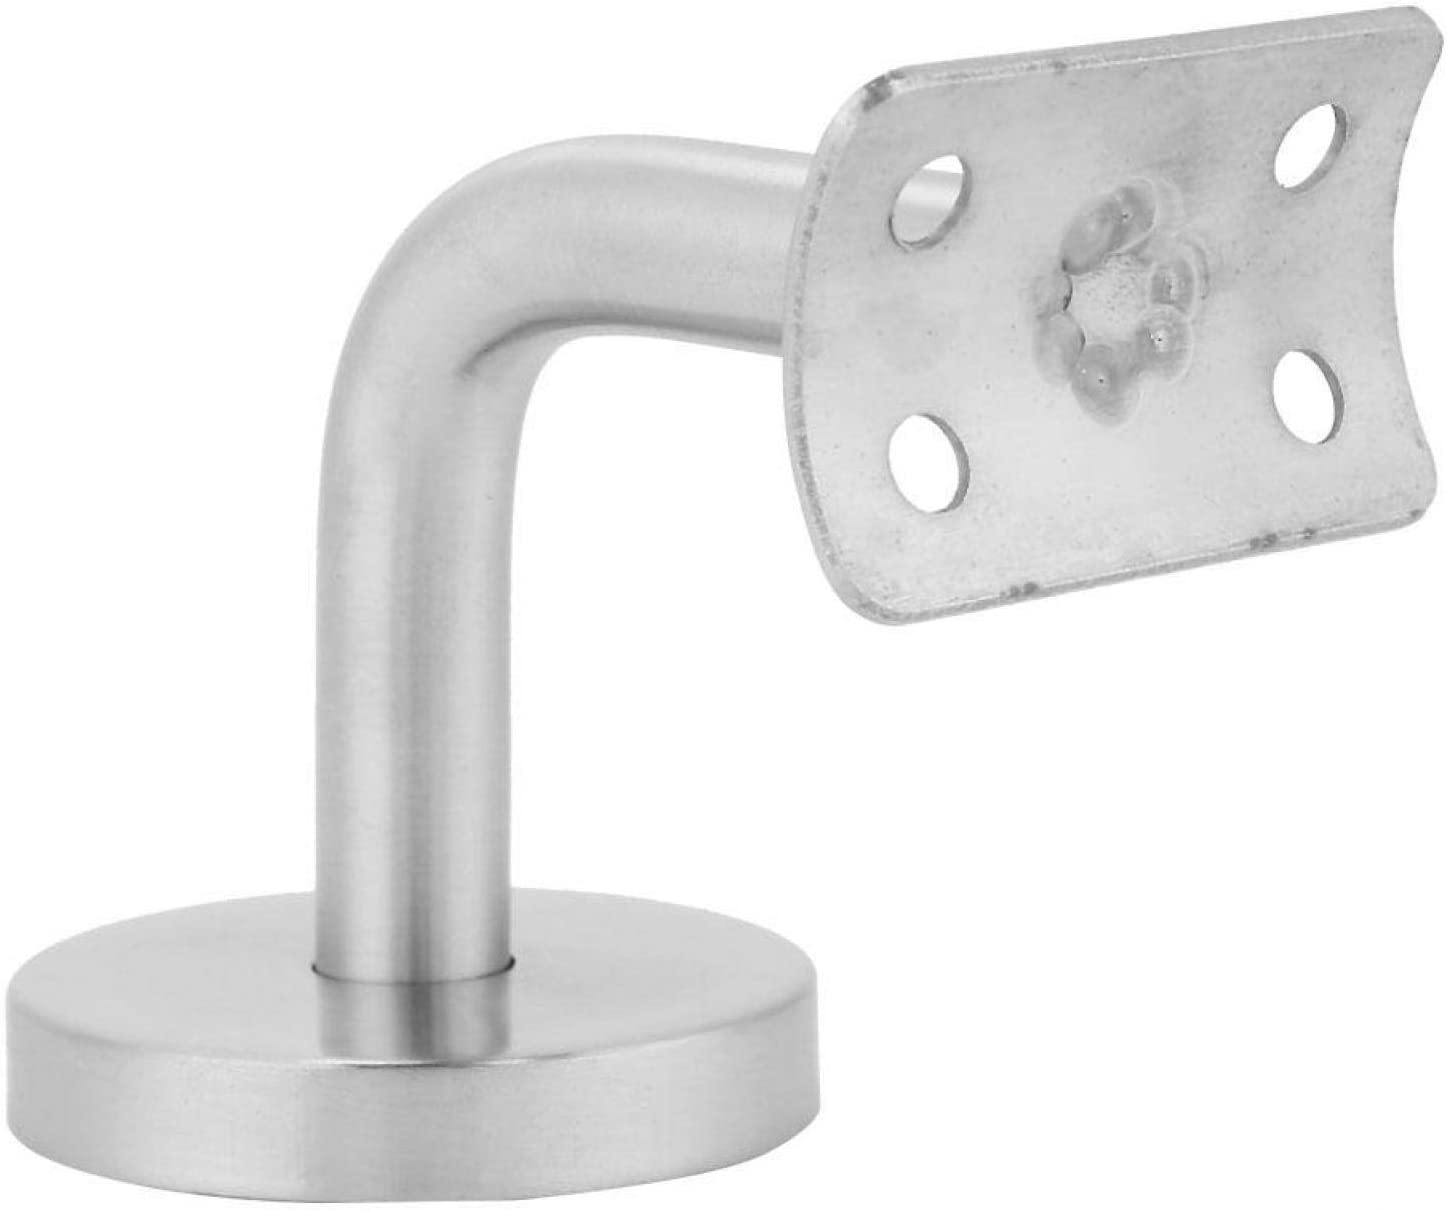 Stair Handrail Bracket Smooth Firm Discount mail order Bright Outlet ☆ Free Shipping Structure Appearance